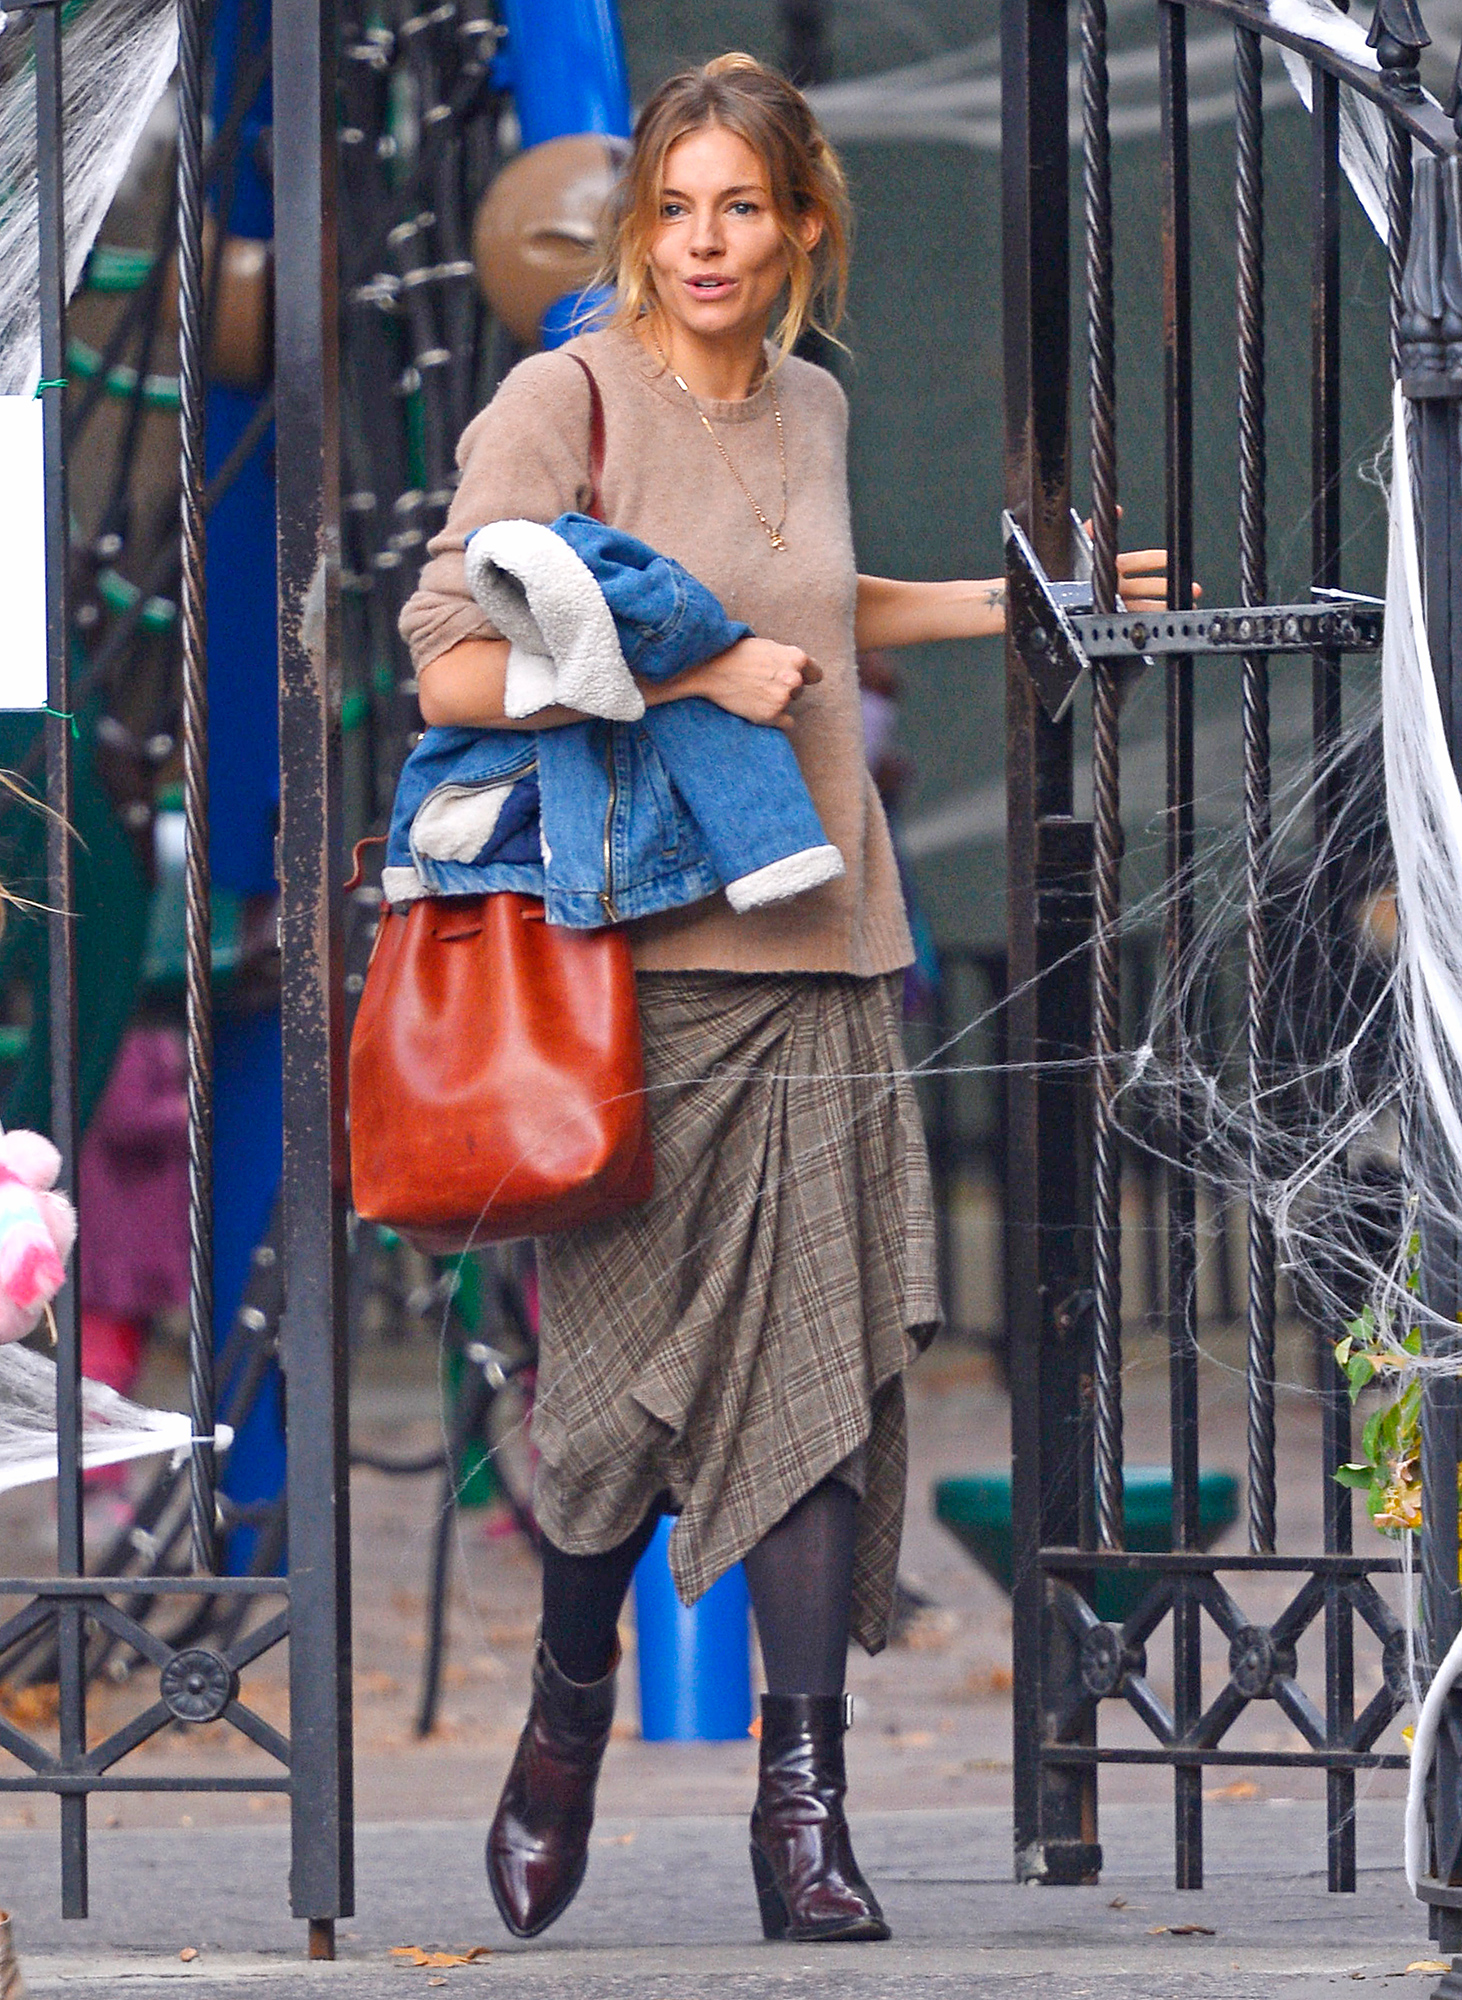 Sienna Miller shows her quirky  fashion style by wearing an assymetrical plaid skirt, cashemere top and brown leather boots